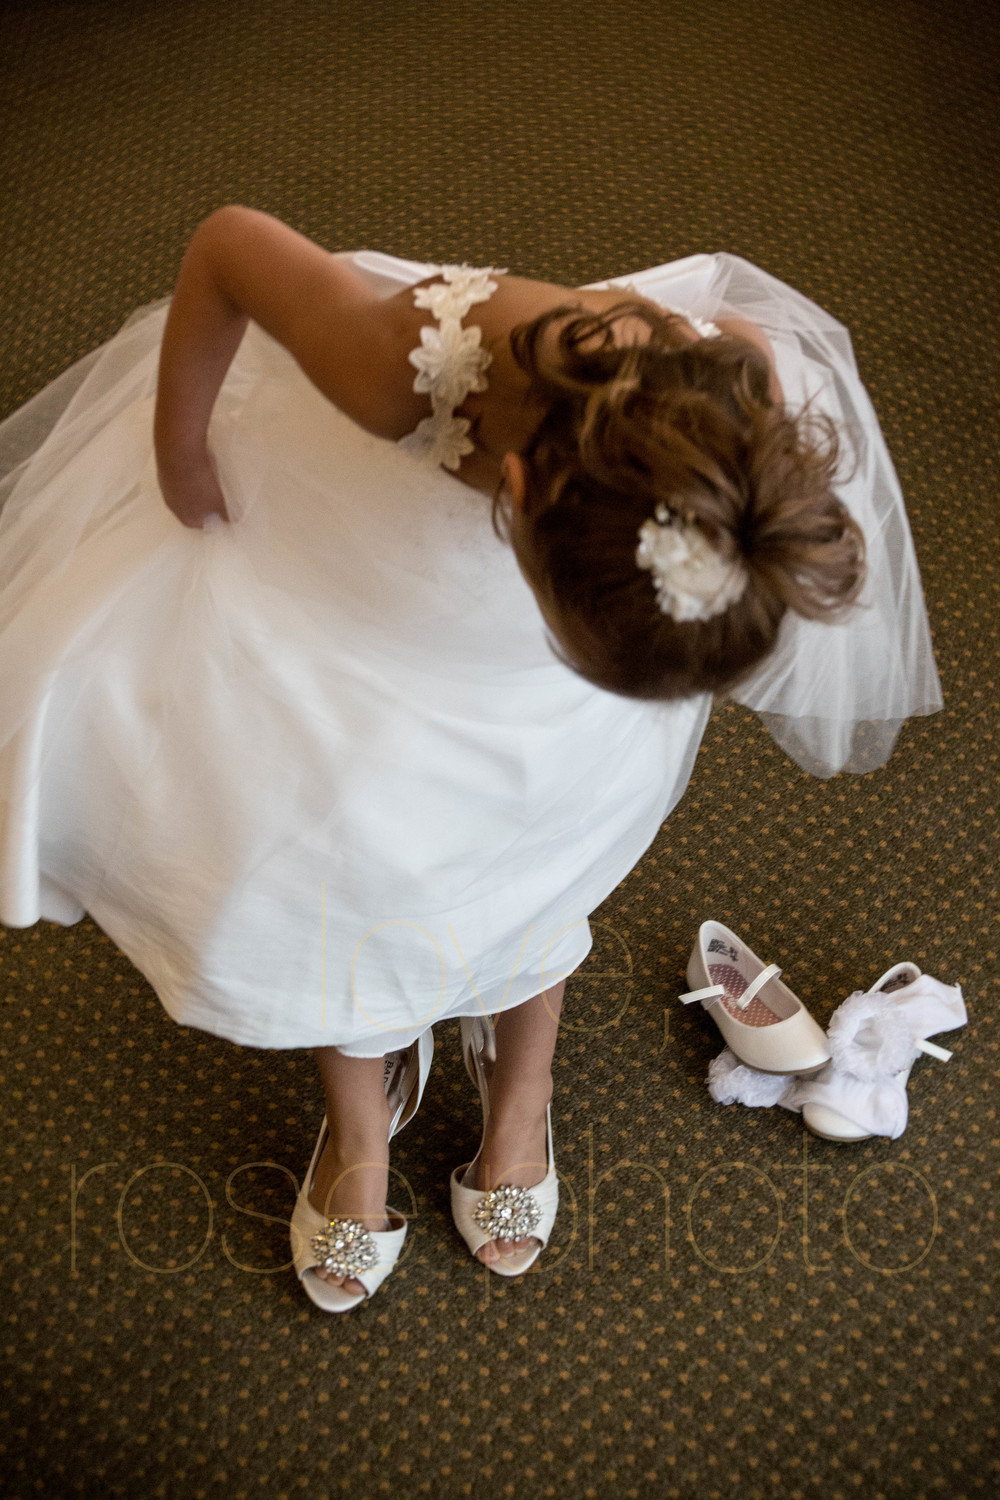 Claudia + Grant Heidel House Wiscon lake wedding best of chicago wedding photographers -7.jpg